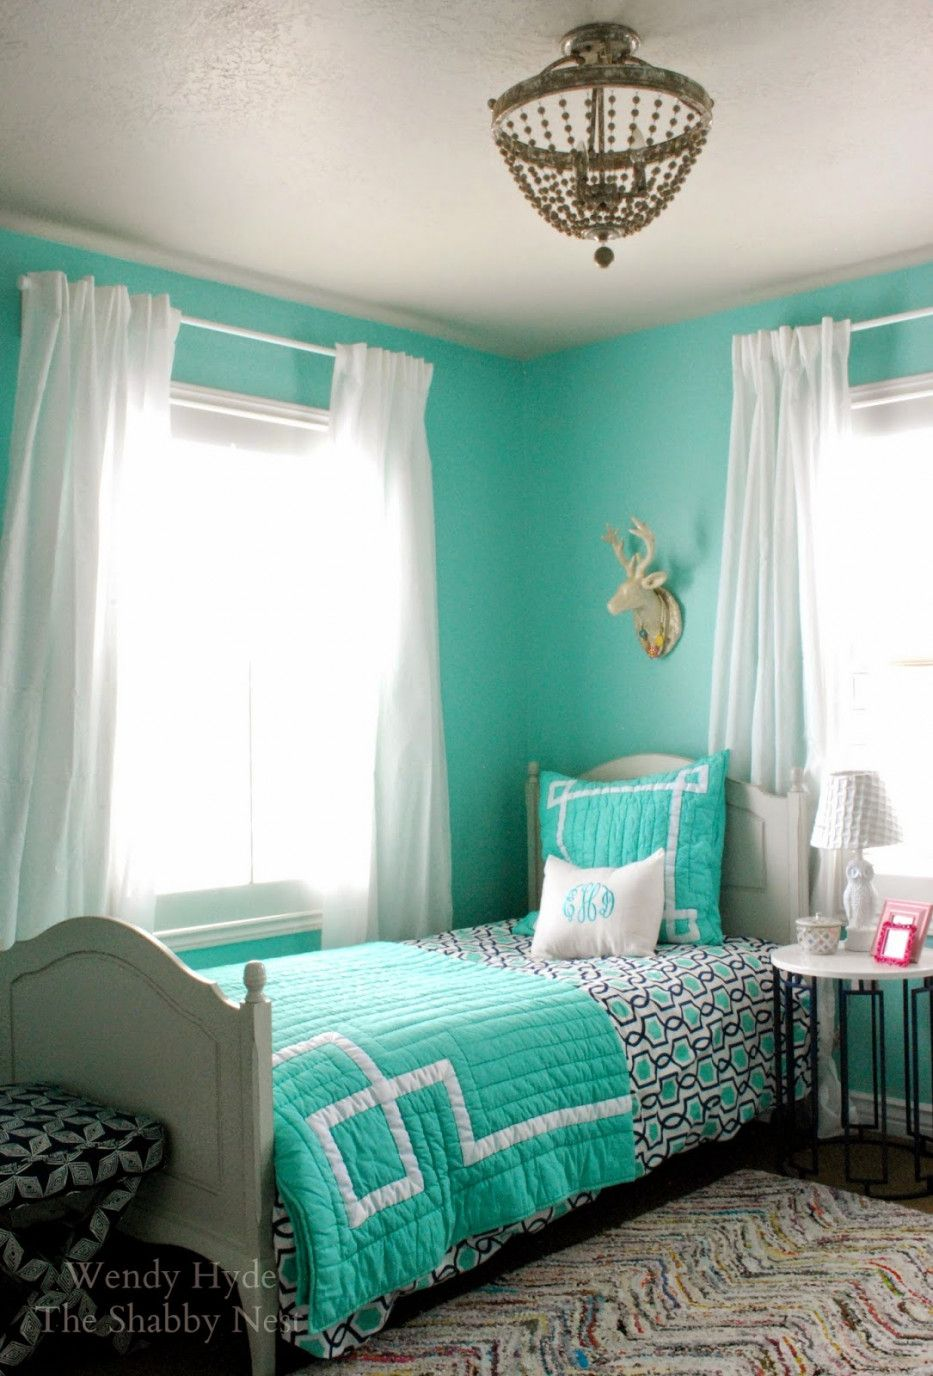 Exceptional Aqua Color Bedroom Ideas Part - 1: 78+ Aqua Color Bedroom Ideas - Interior Design Bedroom Color Schemes Check  More At Http